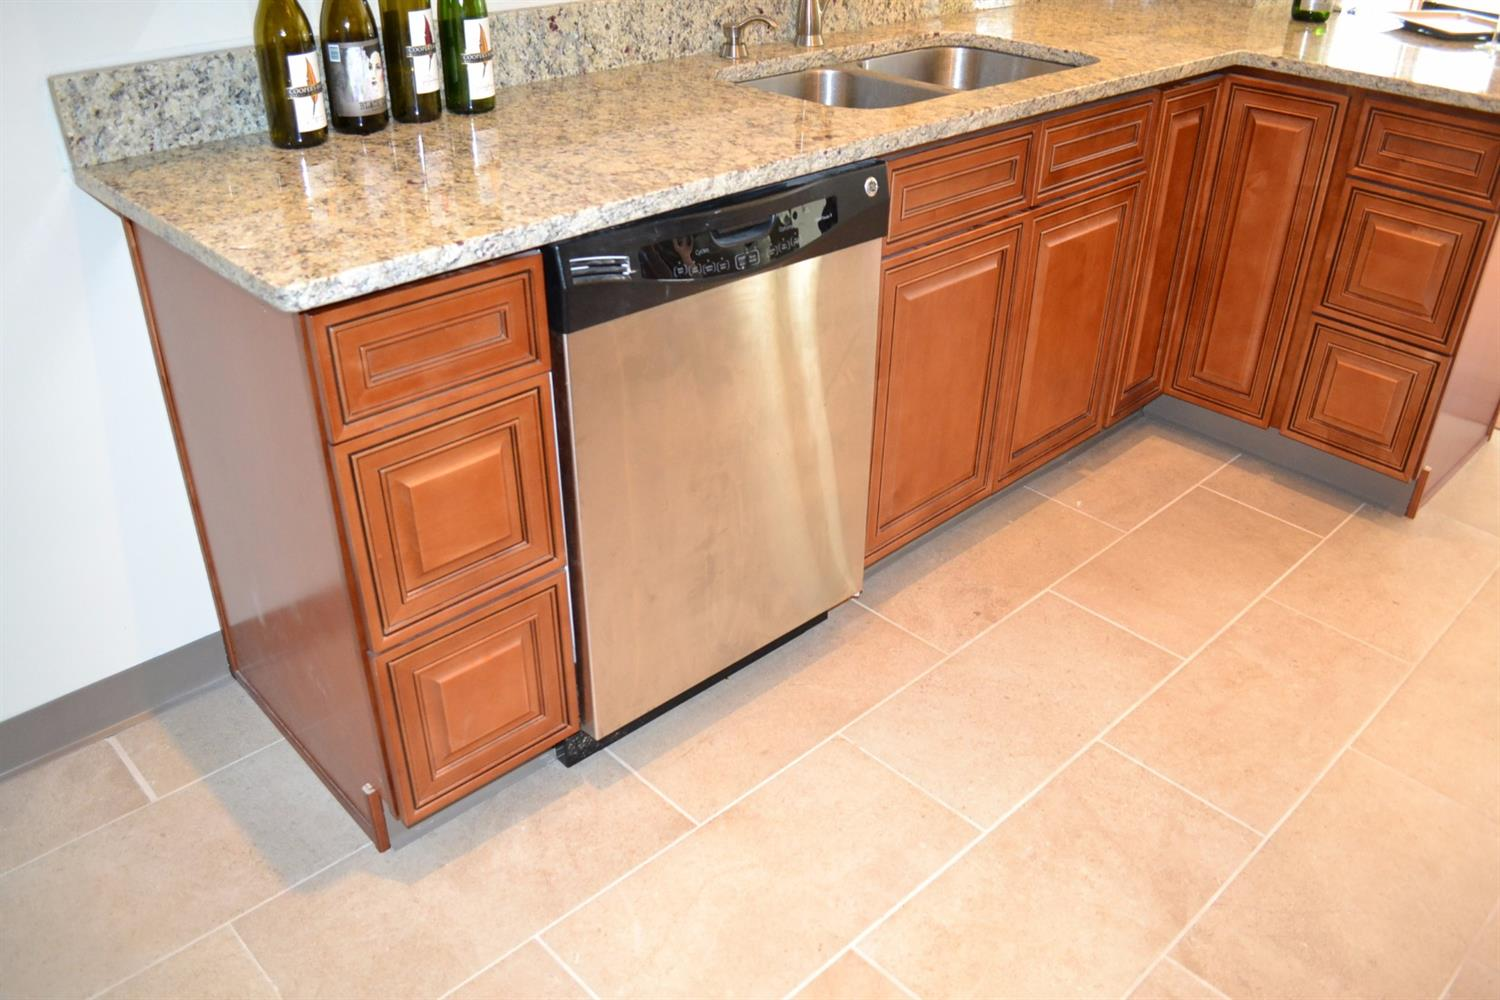 used kitchen cabinets cincinnati ohio kitchen cabinets cincinnati Used Kitchen Cabinets Cincinnati Lillian Laminate